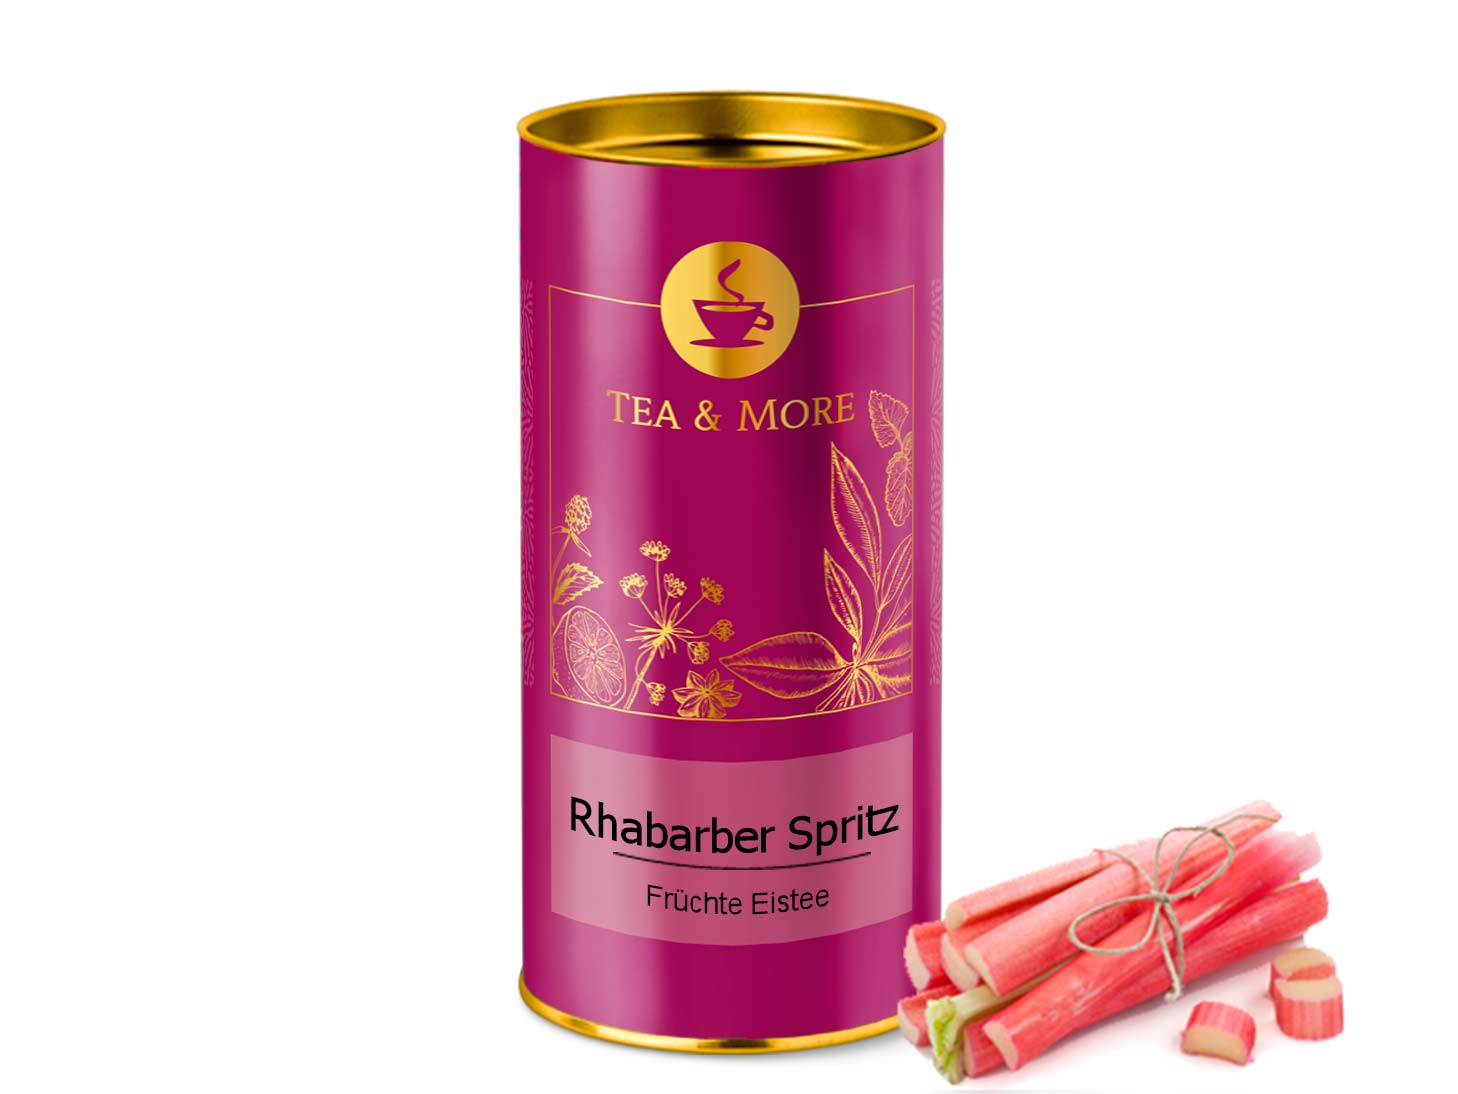 Rhabarber Spritz Ice Tea